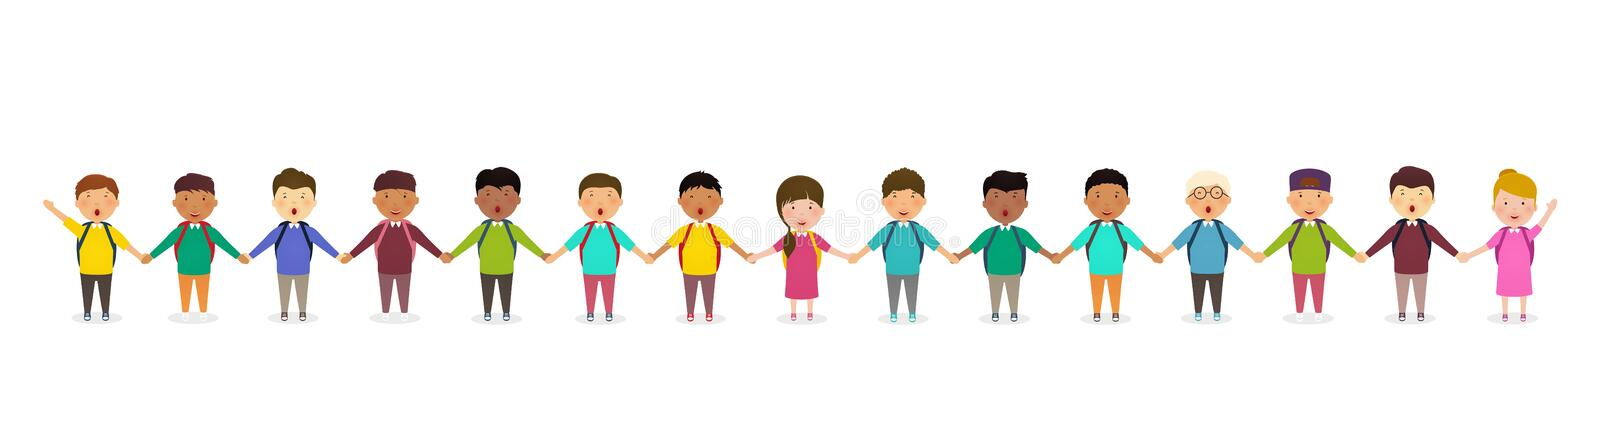 Pupils and kids holding hands. Children`s group of school children stands in row. Happy crowd of pupils on white background. royalty free illustration